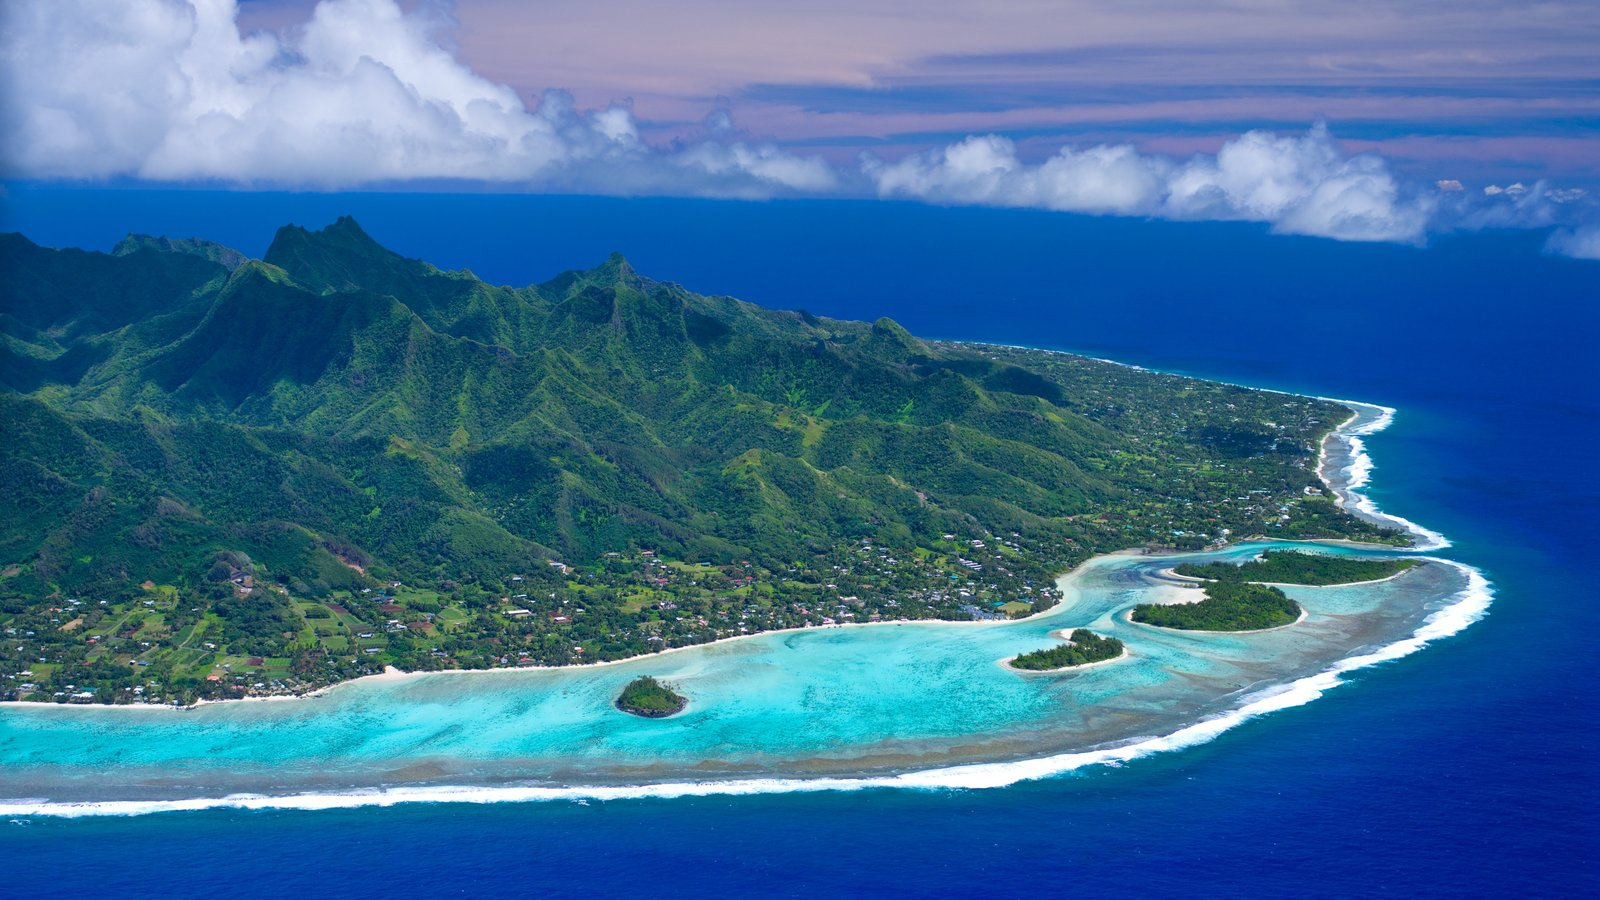 Landscape Pictures: View Images of Cook Islands